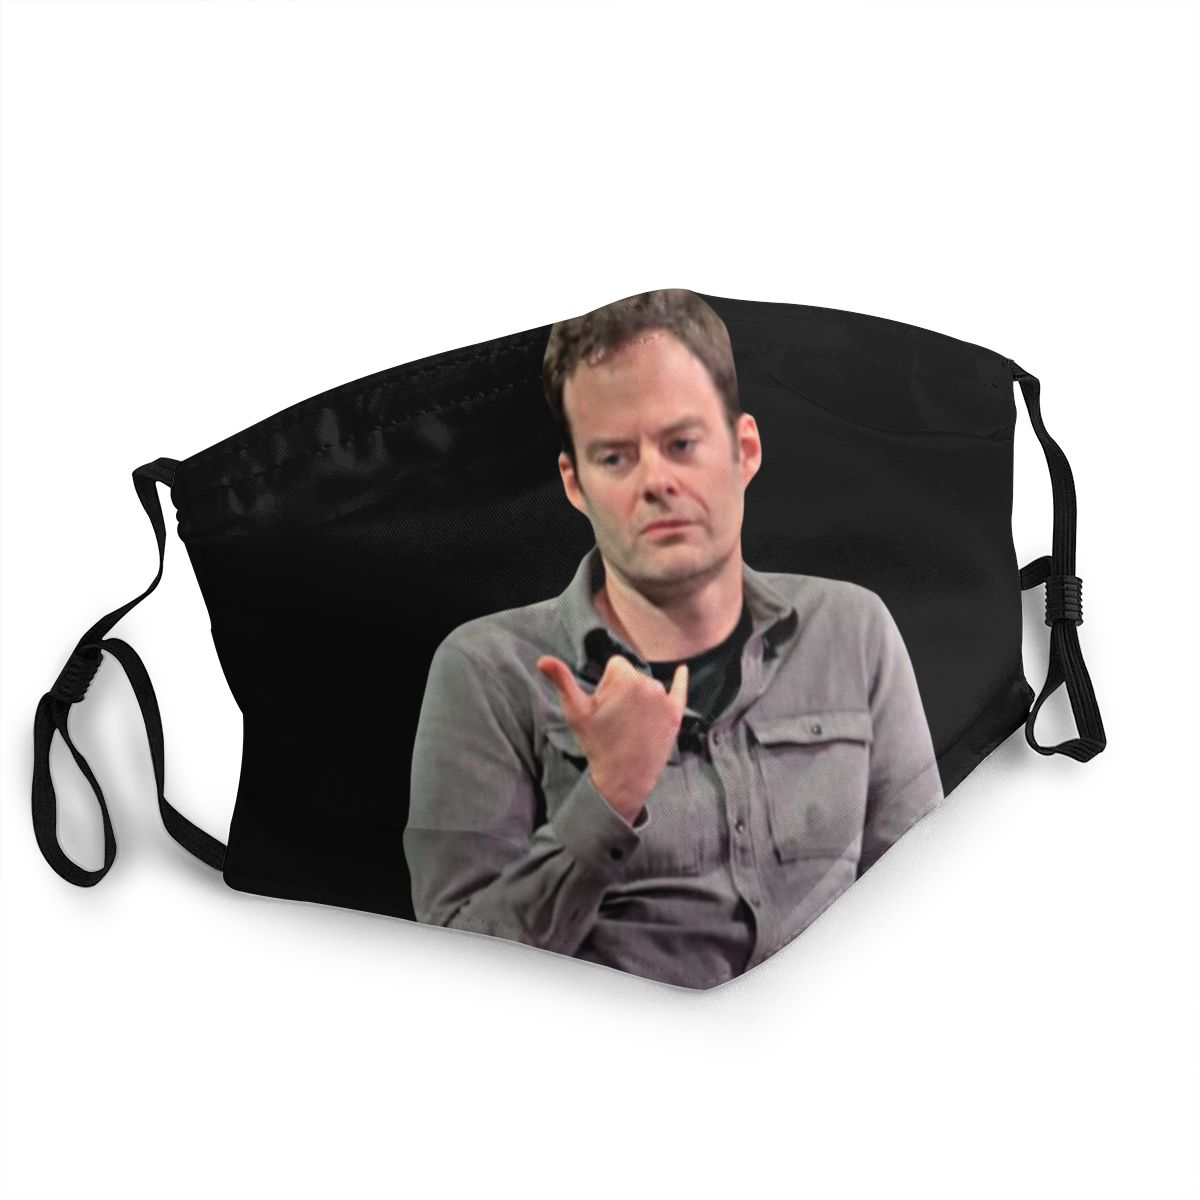 Barry Bill Hader Non-Disposable Face Mask Anti Haze Dust Mask Protection Mask Respirator Mouth Muffle